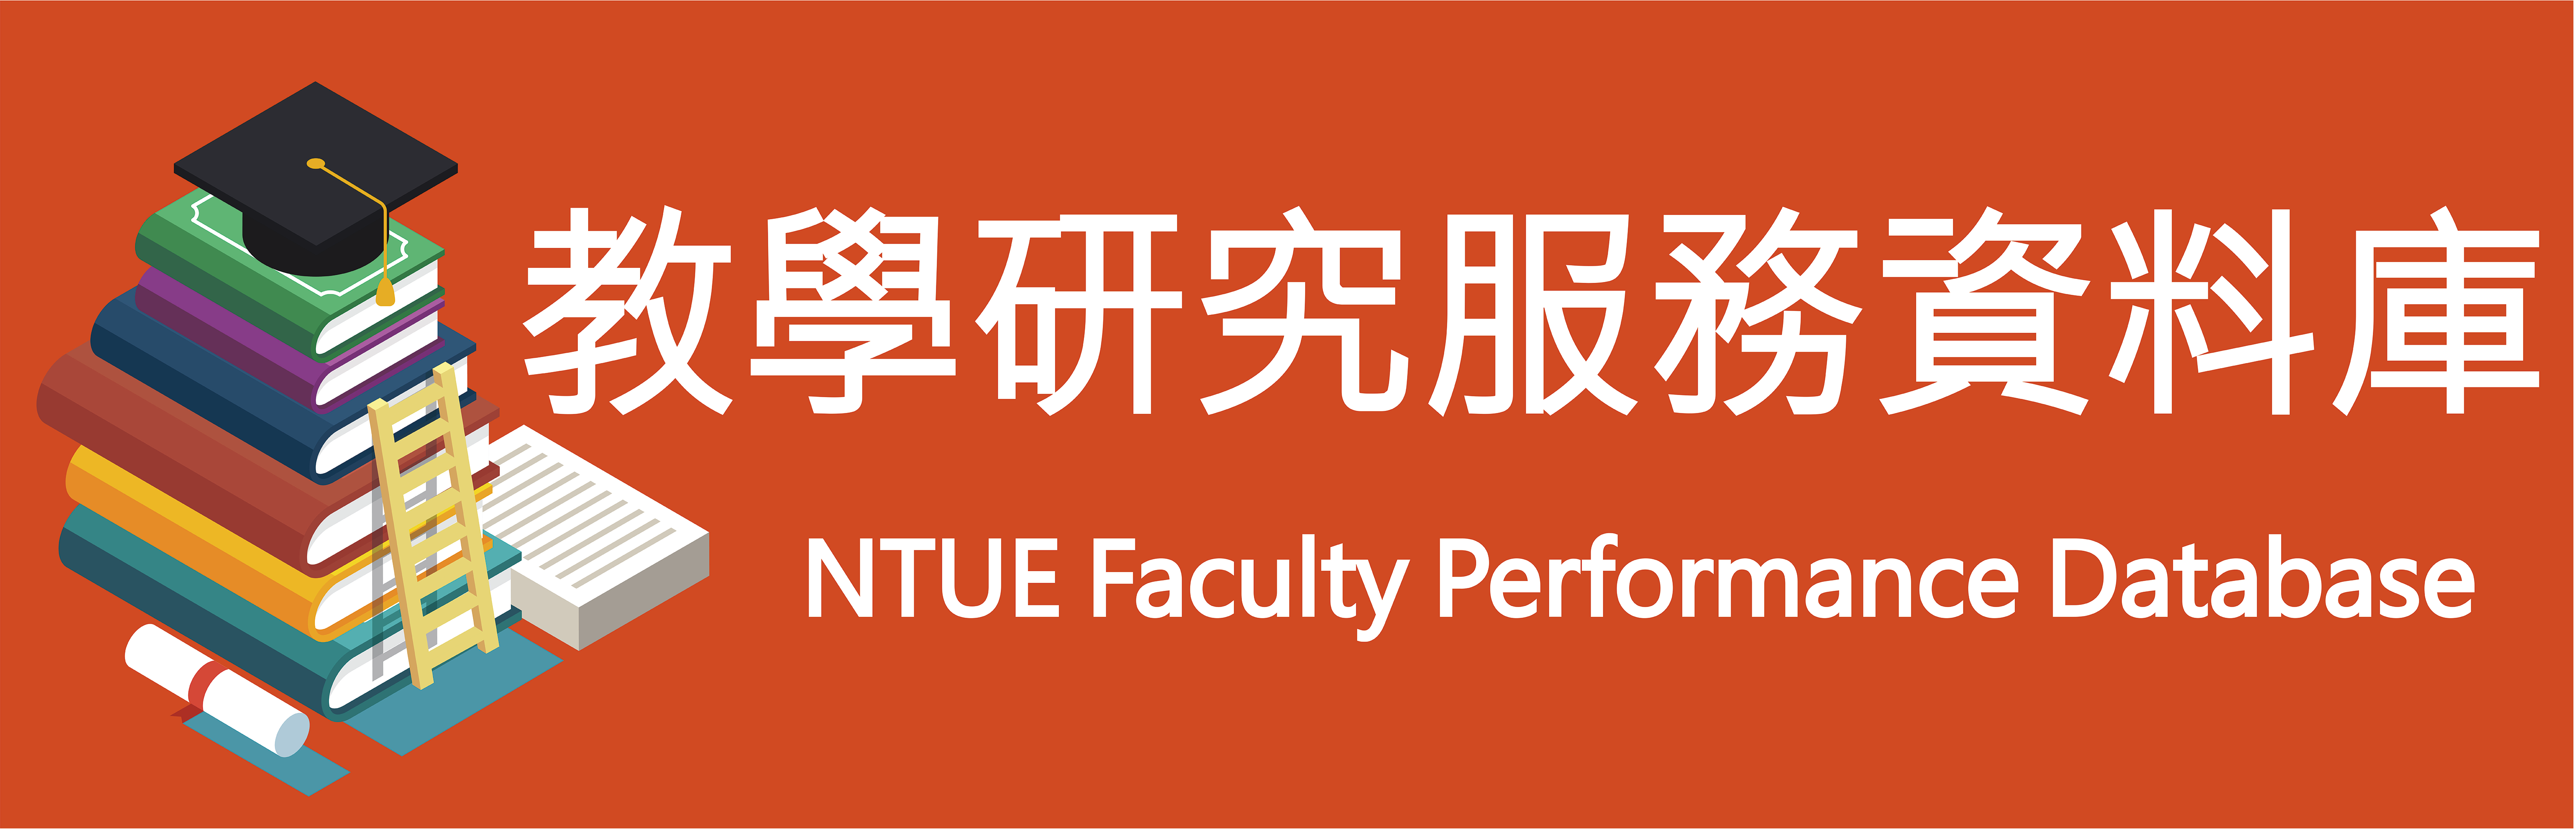 NTUE Faculty Performance Database